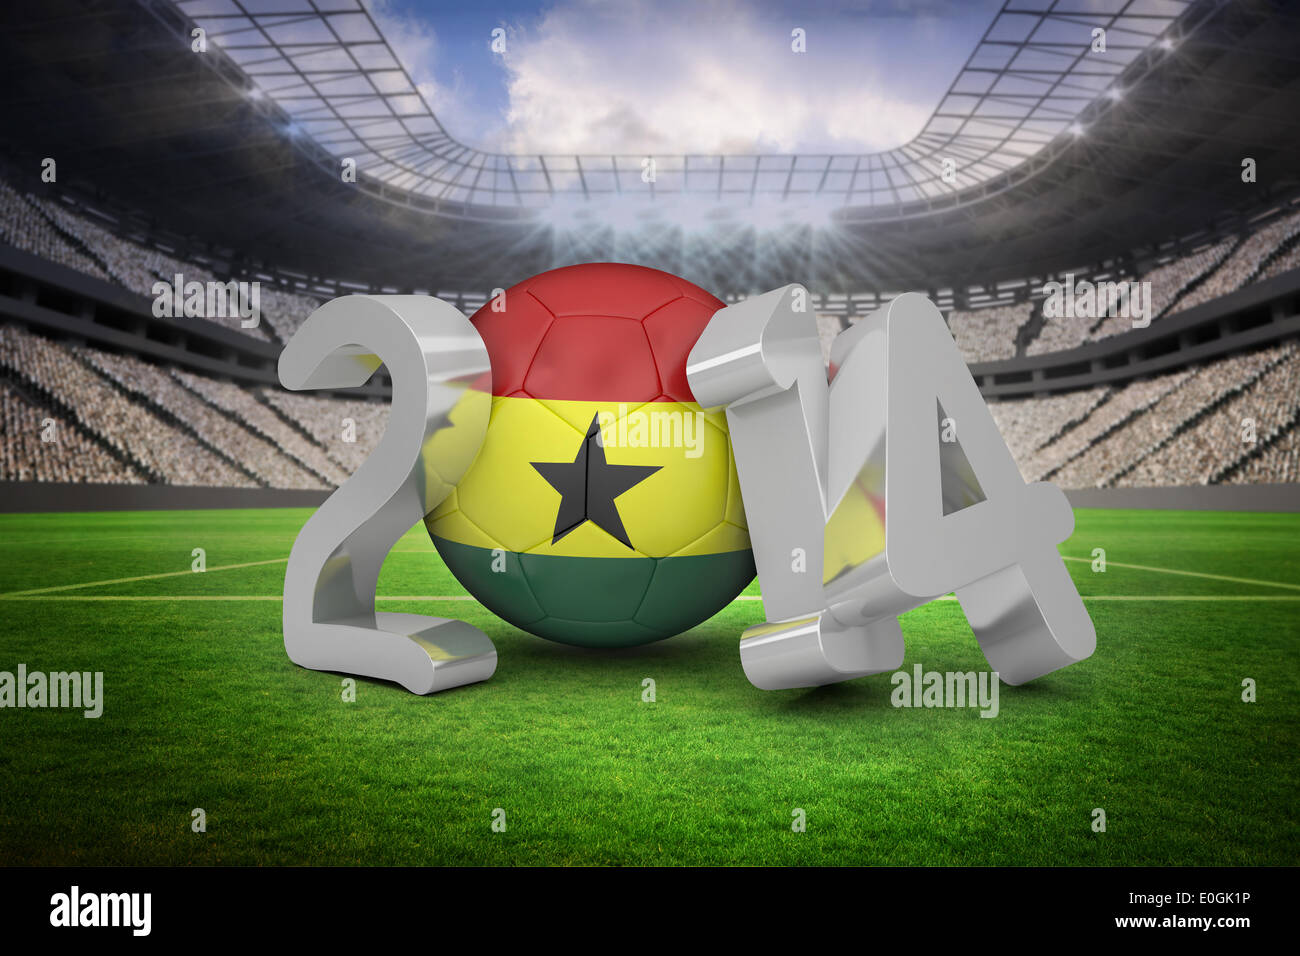 Ghana world cup 2014 message - Stock Image